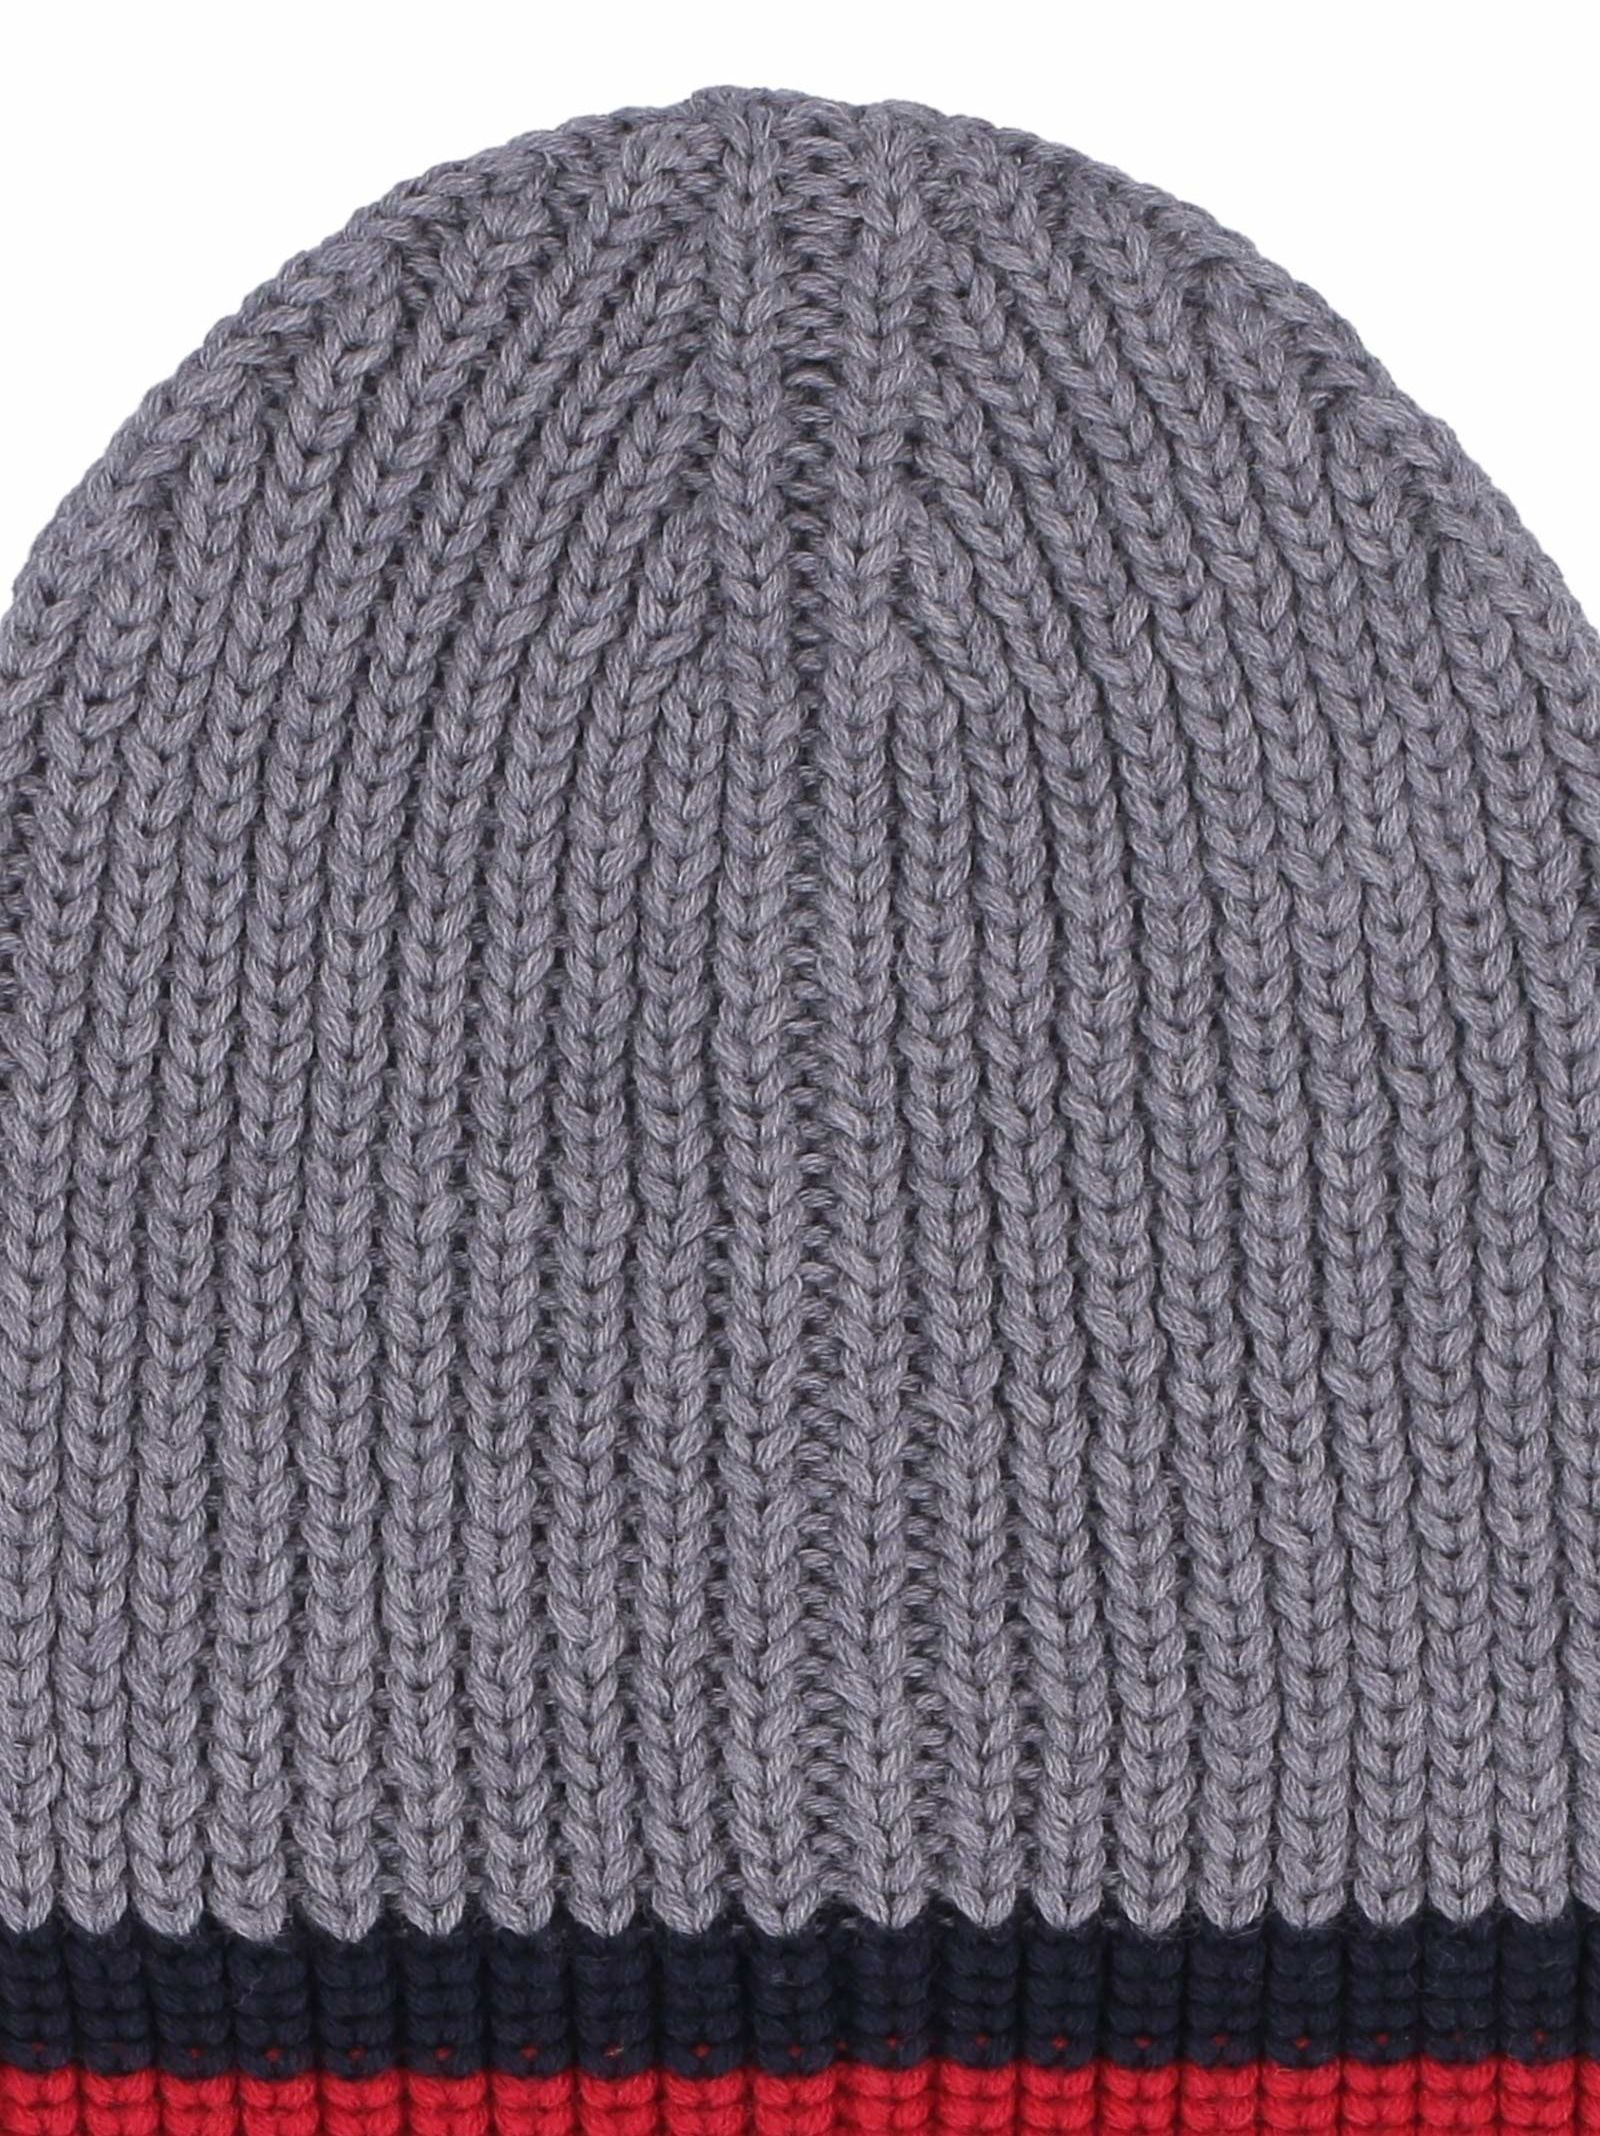 1afceb2d GUCCI RIBBED KNIT HAT. #gucci | Gucci in 2019 | Knitted hats, Hats ...